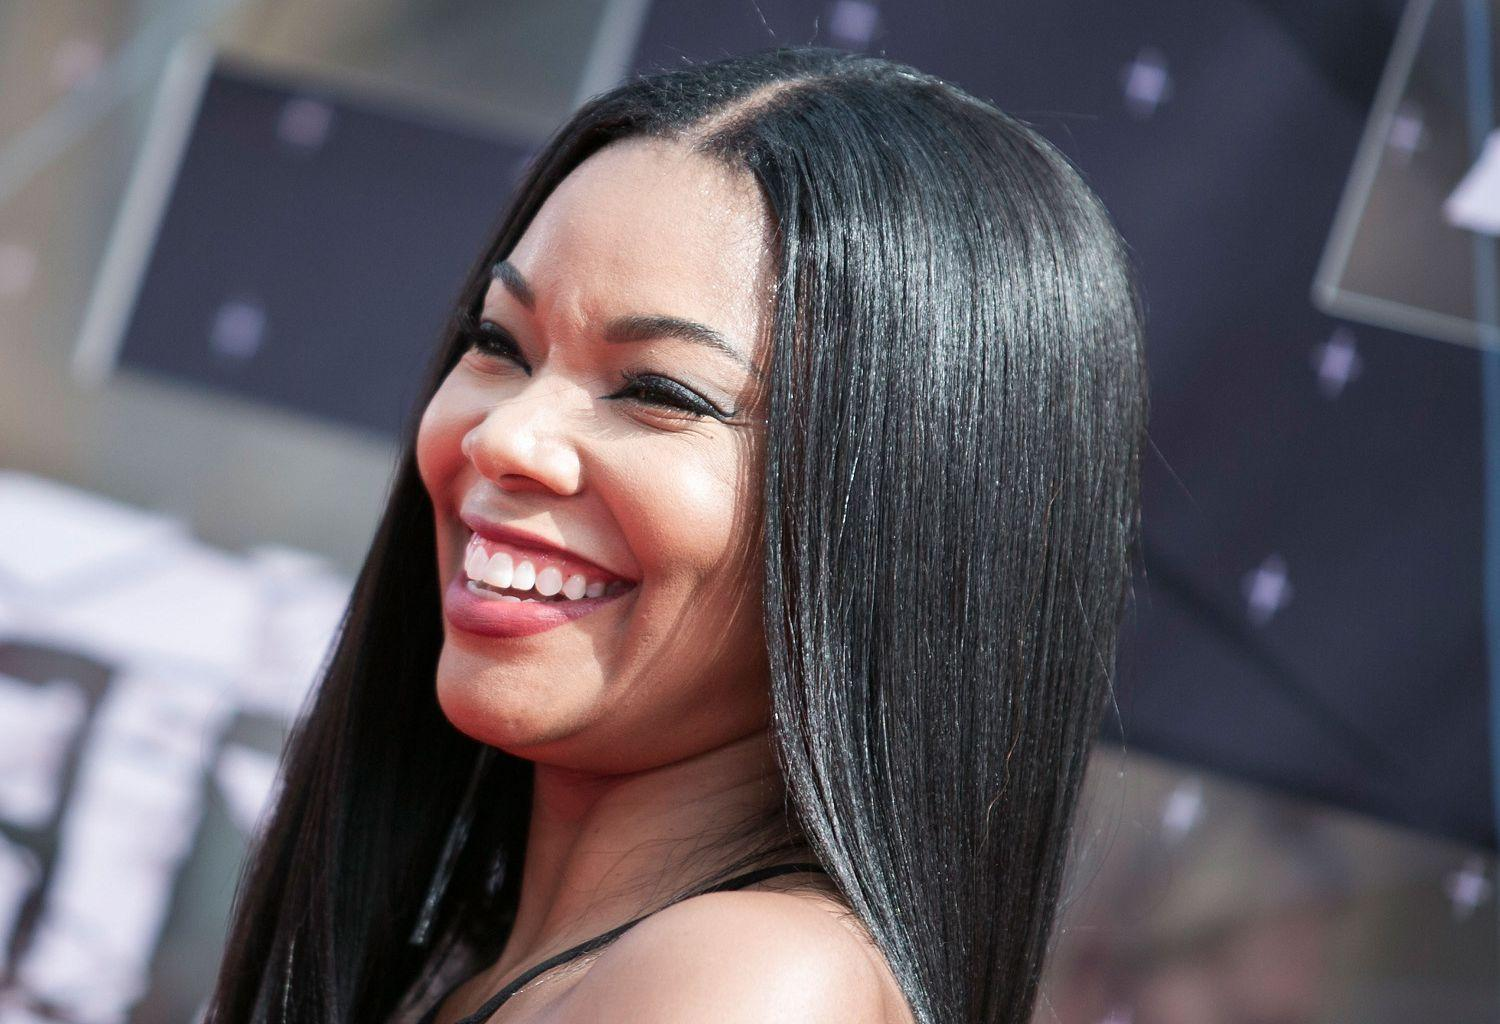 Gabrielle Union Looks Amazing While Working Out On Her Terrace - See The Video